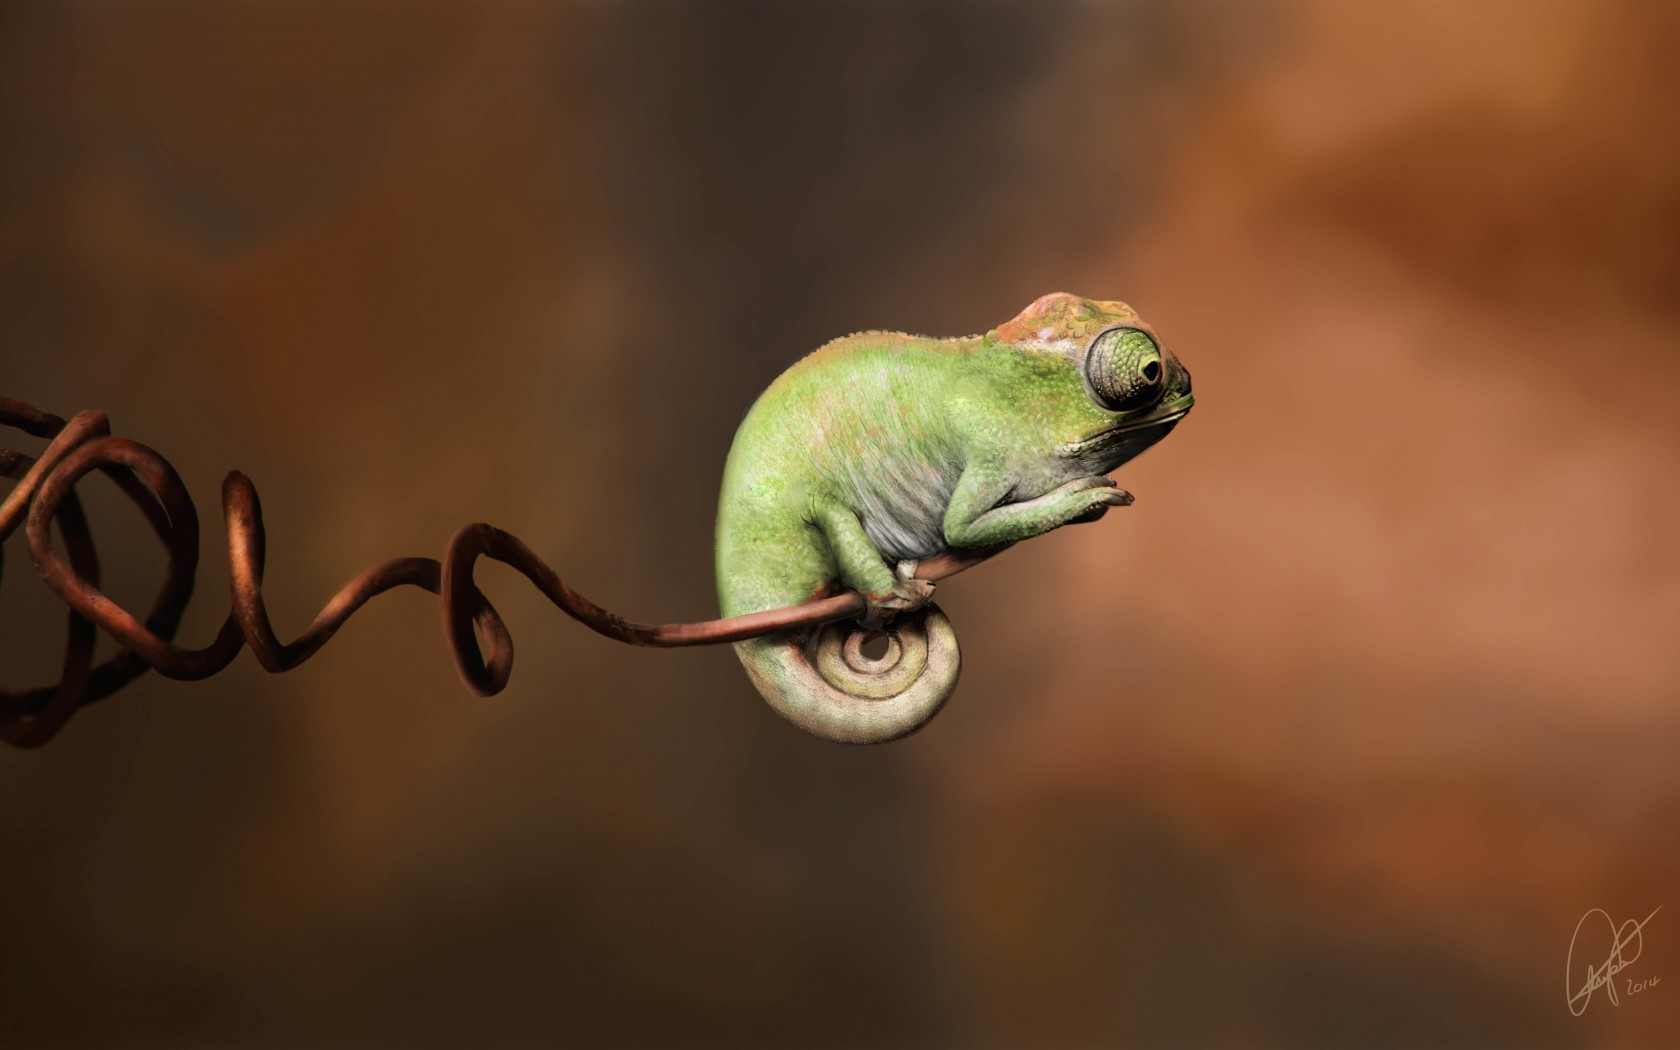 Baby Chameleon Perching On a Twisted Branch Wallpaper for Desktop 1680x1050